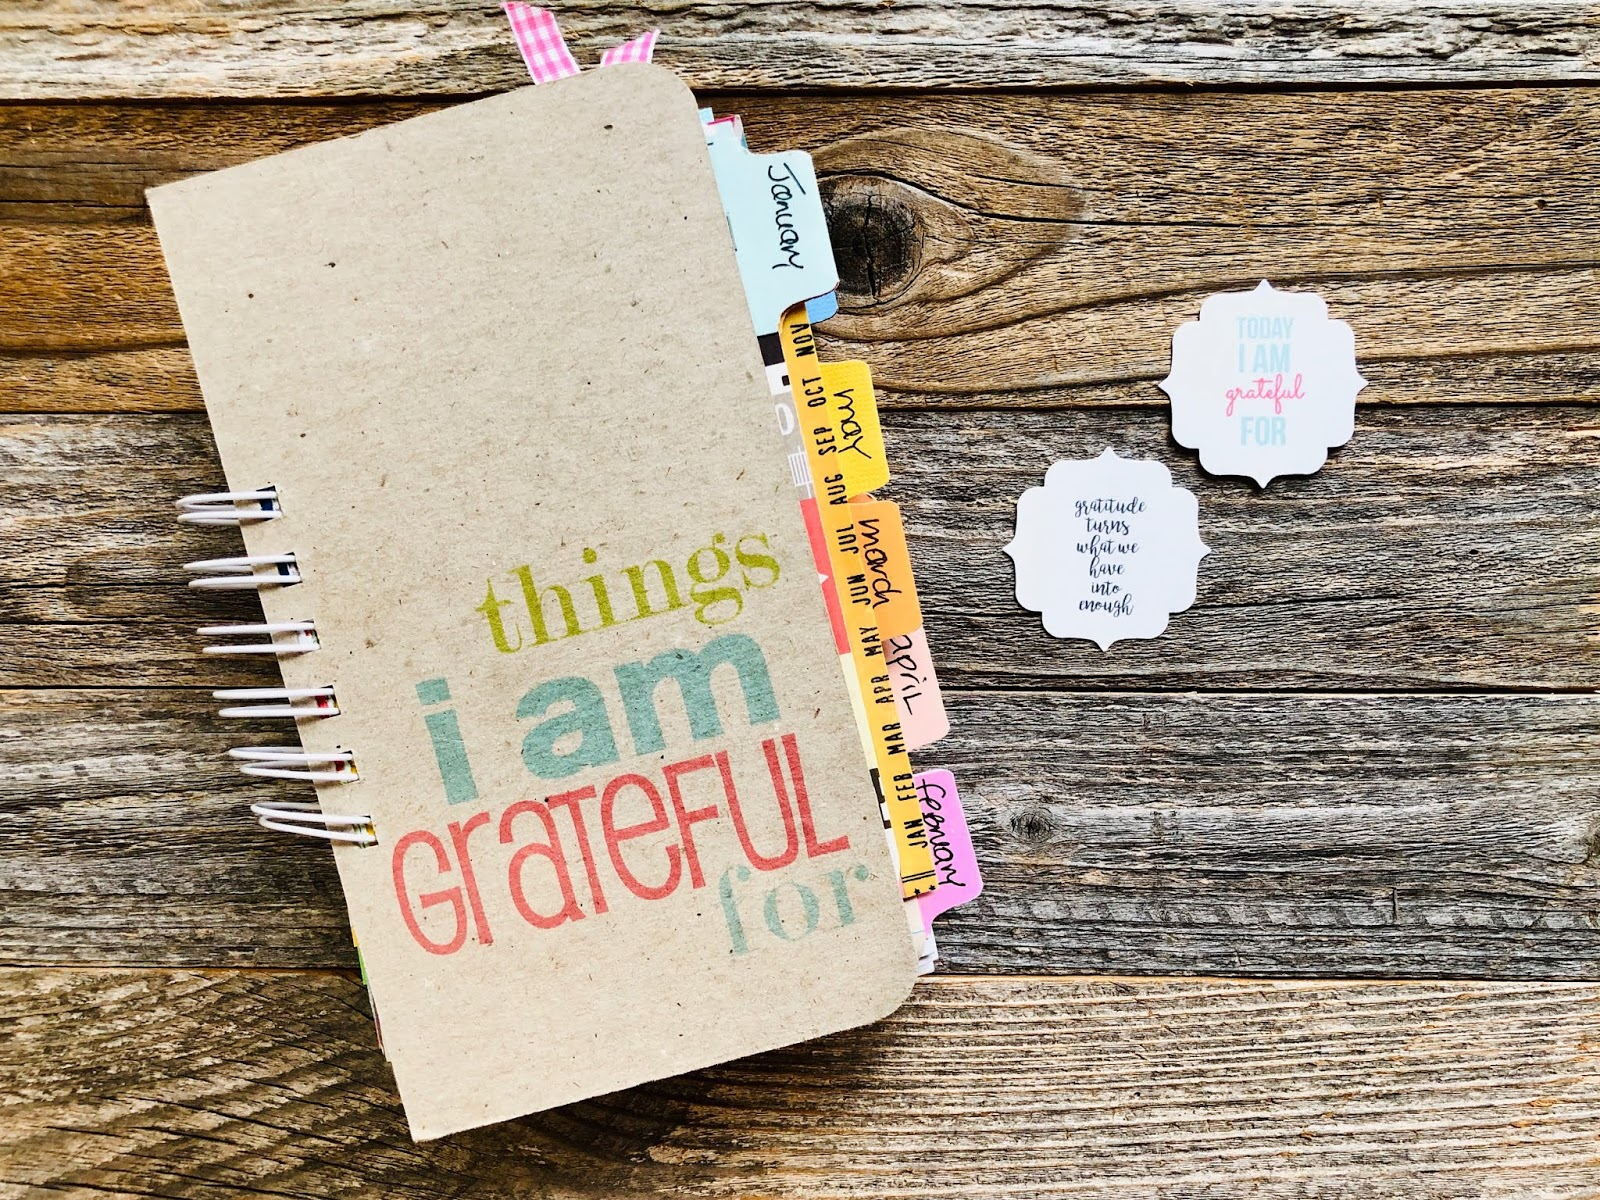 #travelers notebook #gratitude journal #today #journal card #printable #grateful #thankful #journal #notebook #art journaling #junk journal